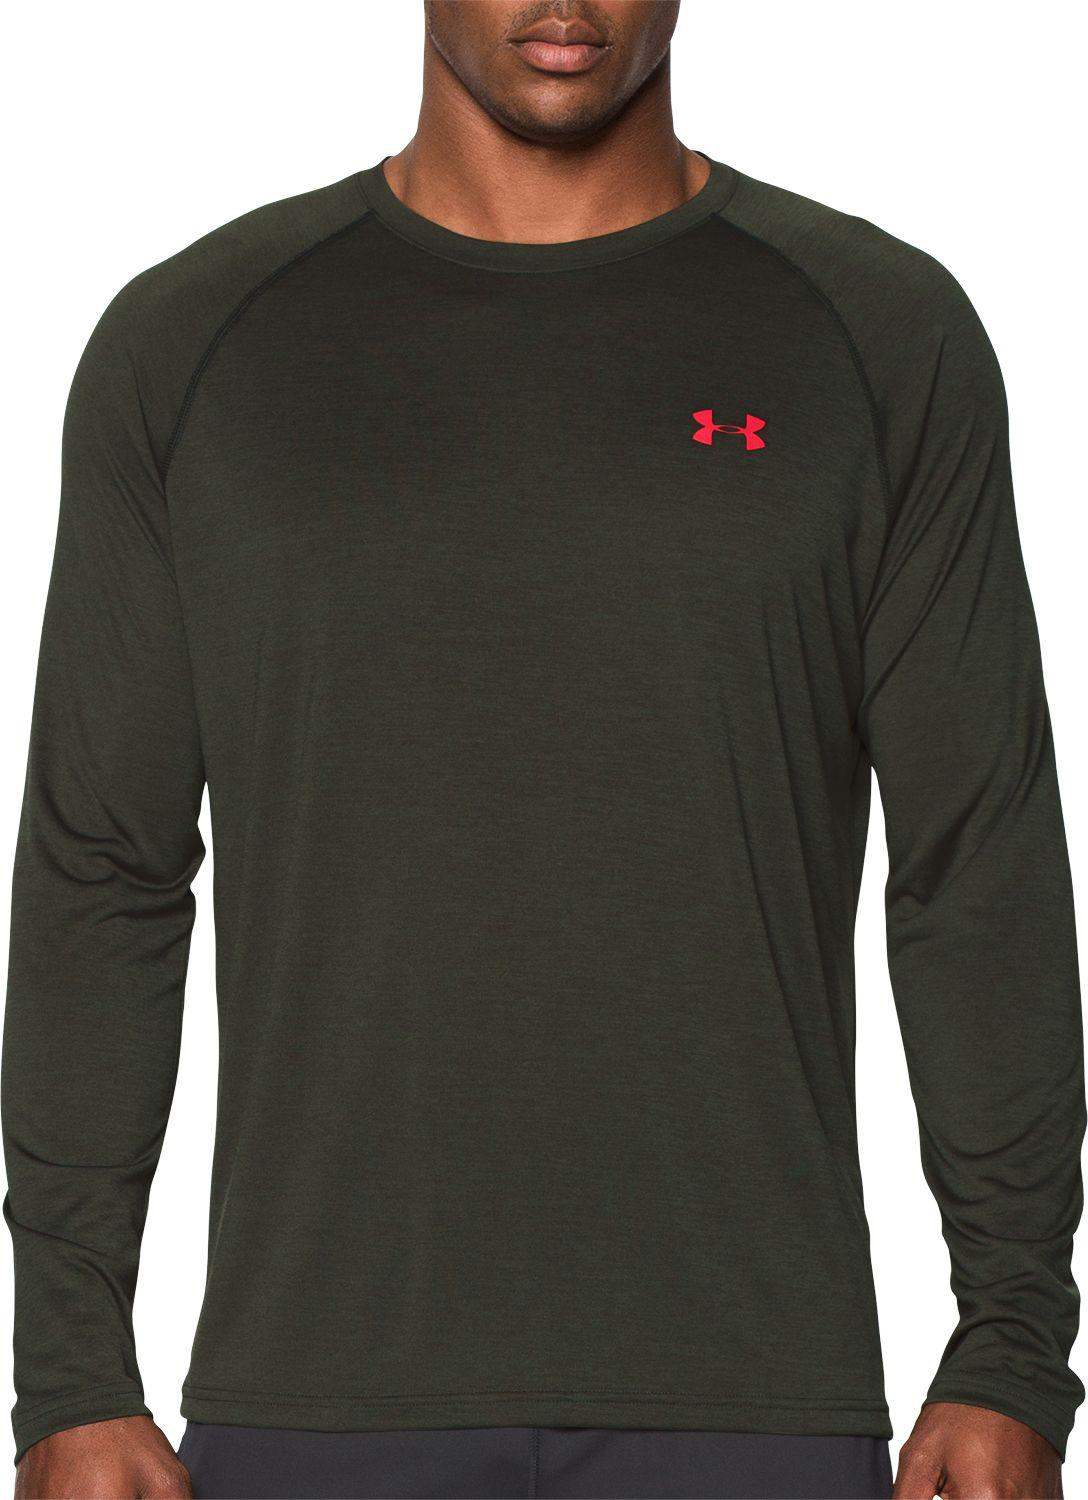 46c43af8 Lyst - Under Armour Ua Tech Long Sleeve Novelty T-shirt in Green for Men